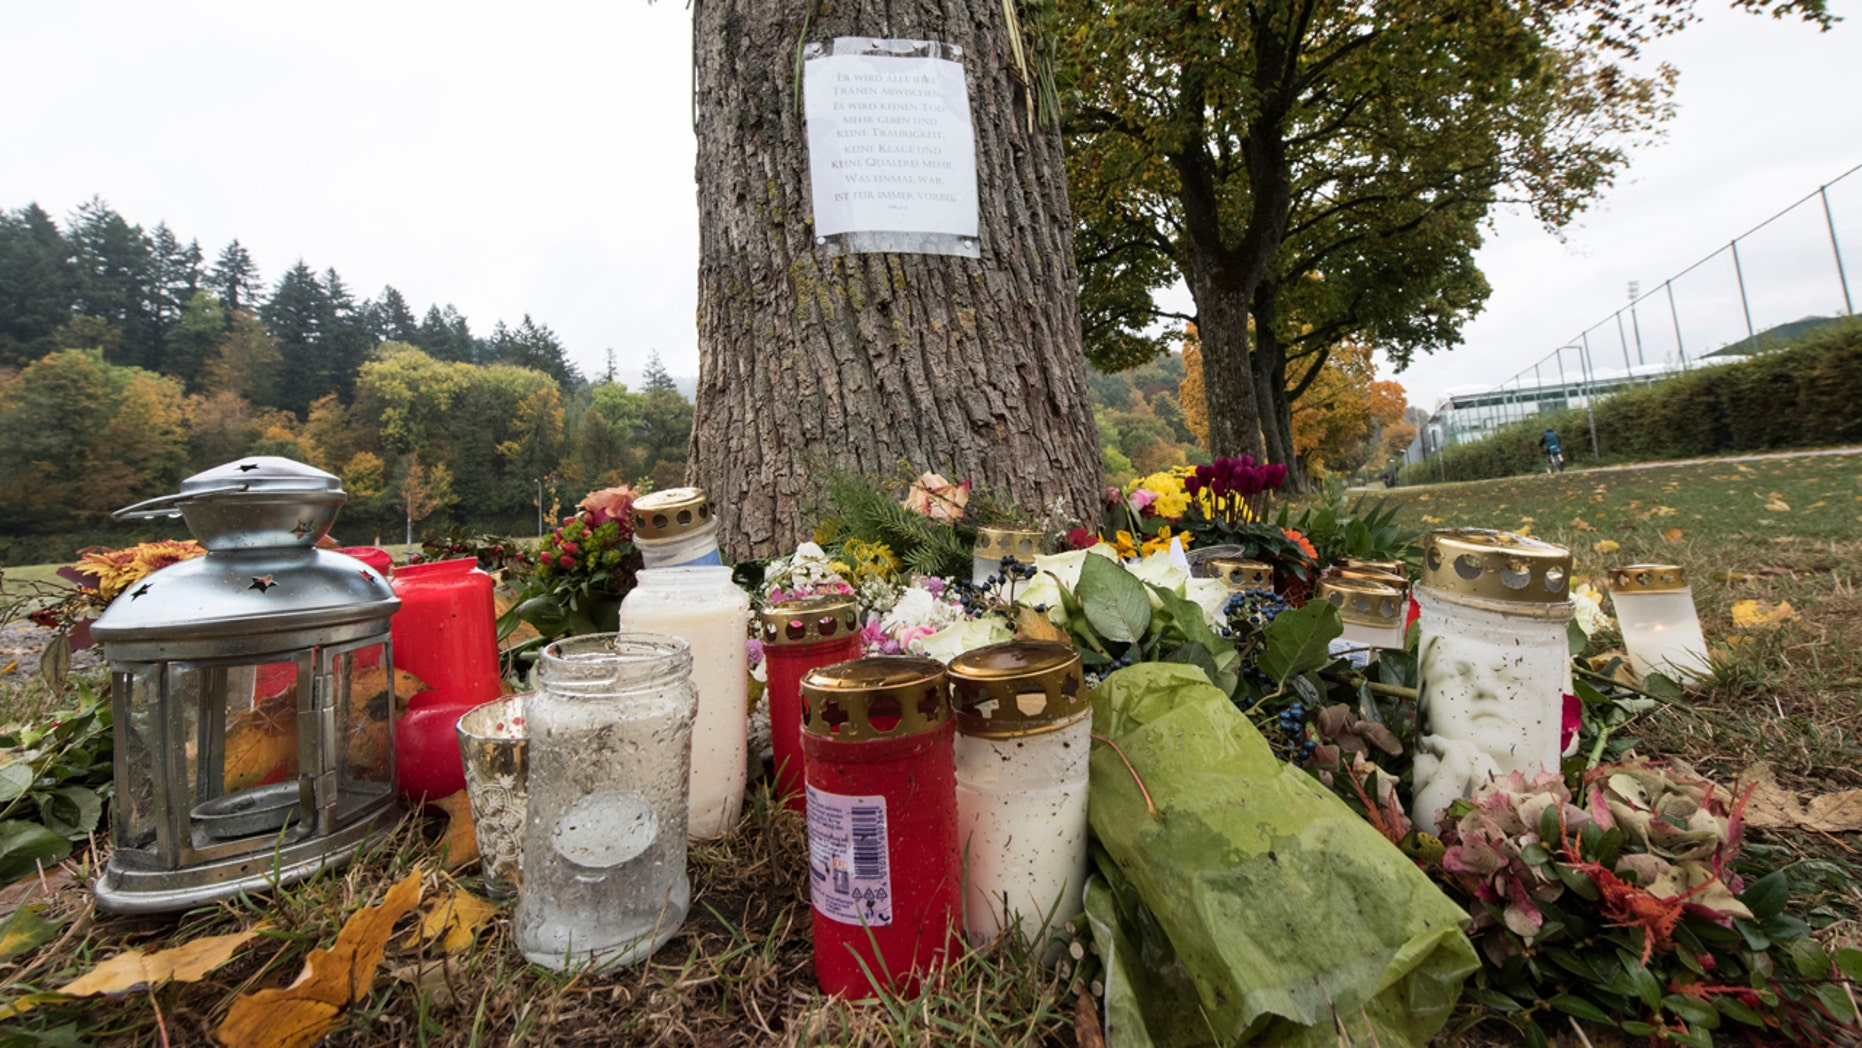 Oct. 21, 2016:  Flowers and candles sit in front of a tree close to the Dreisam river in Freiburg, Germany, where the body of a student was found. A 17-year-old Afghan migrant, who entered Germany last year as an unaccompanied minor, was arrested Friday in connection with the killing.